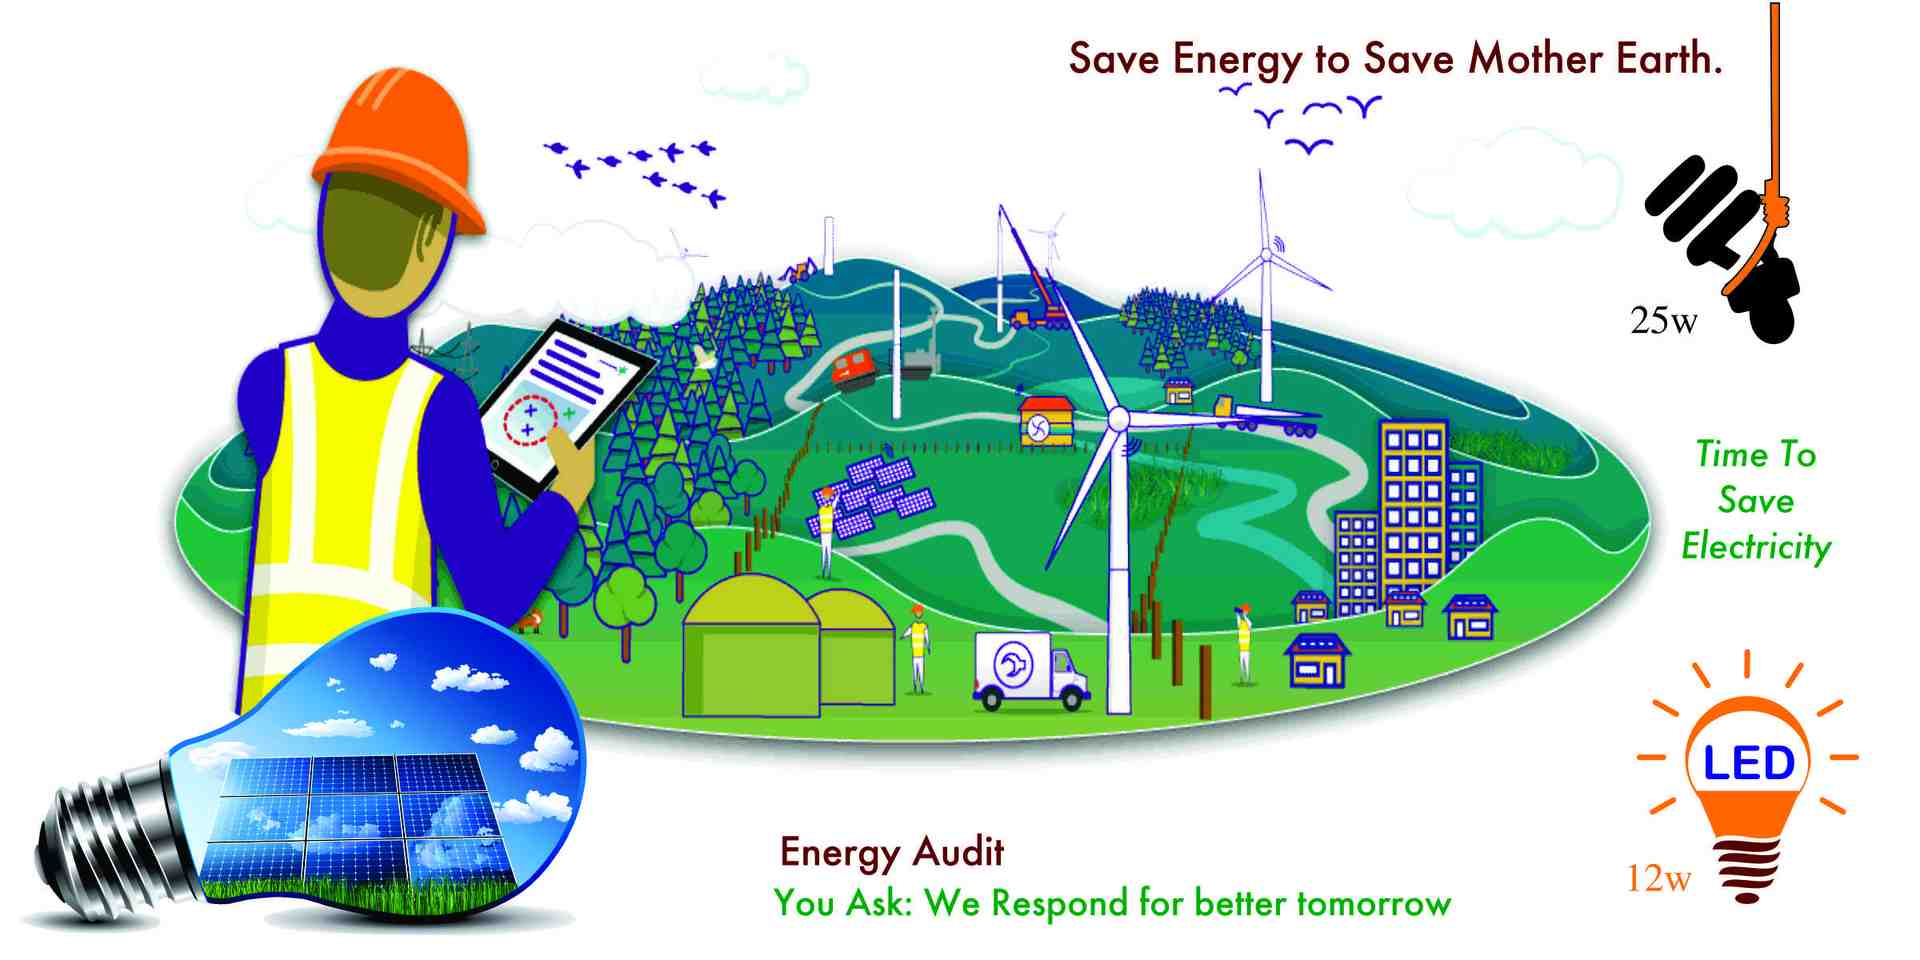 ENERGY AUDITS FOR YOUR NEEDS